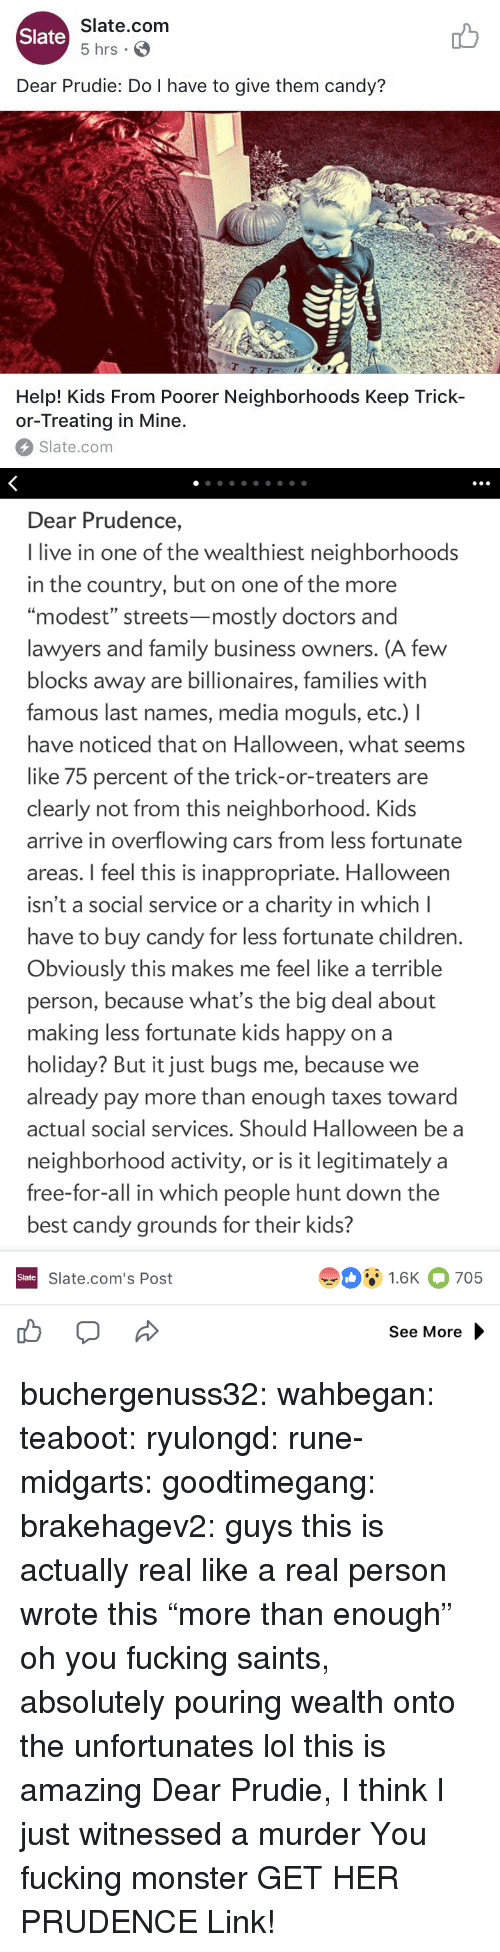 """Candy, Cars, and Children: Slate.com  5 hrs .  Slate  Dear Prudie: Do I have to give them candy?  aT  T-T  Help! Kids From Poorer Neighborhoods Keep Trick-  or-Treating in Mine.  Slate.com   Dear Prudence,  I live in one of the wealthiest neighborhoods  in the country, but on one of the more  """"modest"""" streets-mostly doctors and  lawyers and family business owners. (A few  blocks away are billionaires, families with  famous last names, media moguls, etc.) I  have noticed that on Halloween, what seems  like 75 percent of the trick-or-treaters are  clearly not from this neighborhood. Kids  arrive in overflowing cars from less fortunate  areas. I feel this is inappropriate. Halloween  isn't a social service or a charity in which l  have to buy candy for less fortunate children  Obviously this makes me feel like a terrible  person, because what's the big deal about  making less fortunate kids happy on a  holiday? But it just bugs me, because we  already pay more than enough taxes toward  actual social services. Should Halloween be a  neighborhood activity, or is it legitimately a  free-for-all in which people hunt down the  best candy grounds for their kids?  91.6K 705  Slate  Slate.com's Post  See More buchergenuss32:  wahbegan: teaboot:  ryulongd:  rune-midgarts:  goodtimegang:  brakehagev2:  guys this is actually real like a real person wrote this  """"more than enough"""" oh you fucking saints, absolutely pouring wealth onto the unfortunates   lol this is amazing   Dear Prudie, I think I just witnessed a murder  You fucking monster  GET HER PRUDENCE  Link!"""